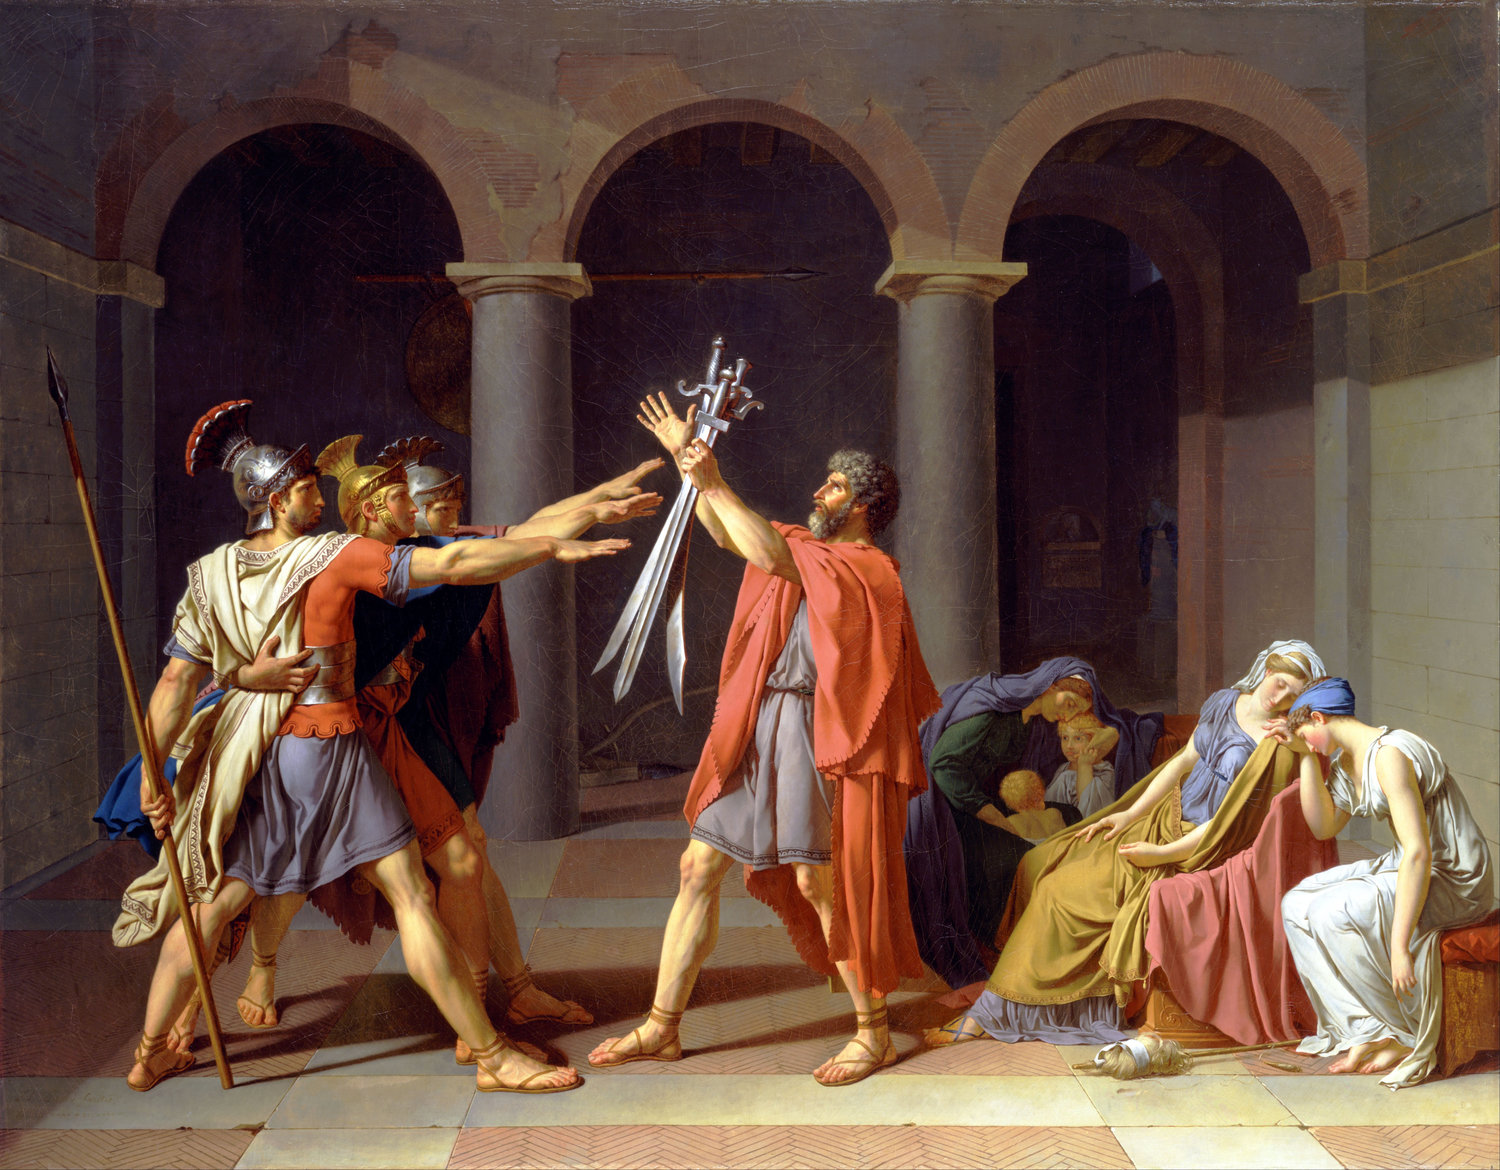 """Jacques-Louis David, """"Oath of the Horatii"""" (1784). Oil on canvas. 10.8 ft. (3.30 m) x 13.9 ft. (4.25 m). Located at the  Louvre ."""